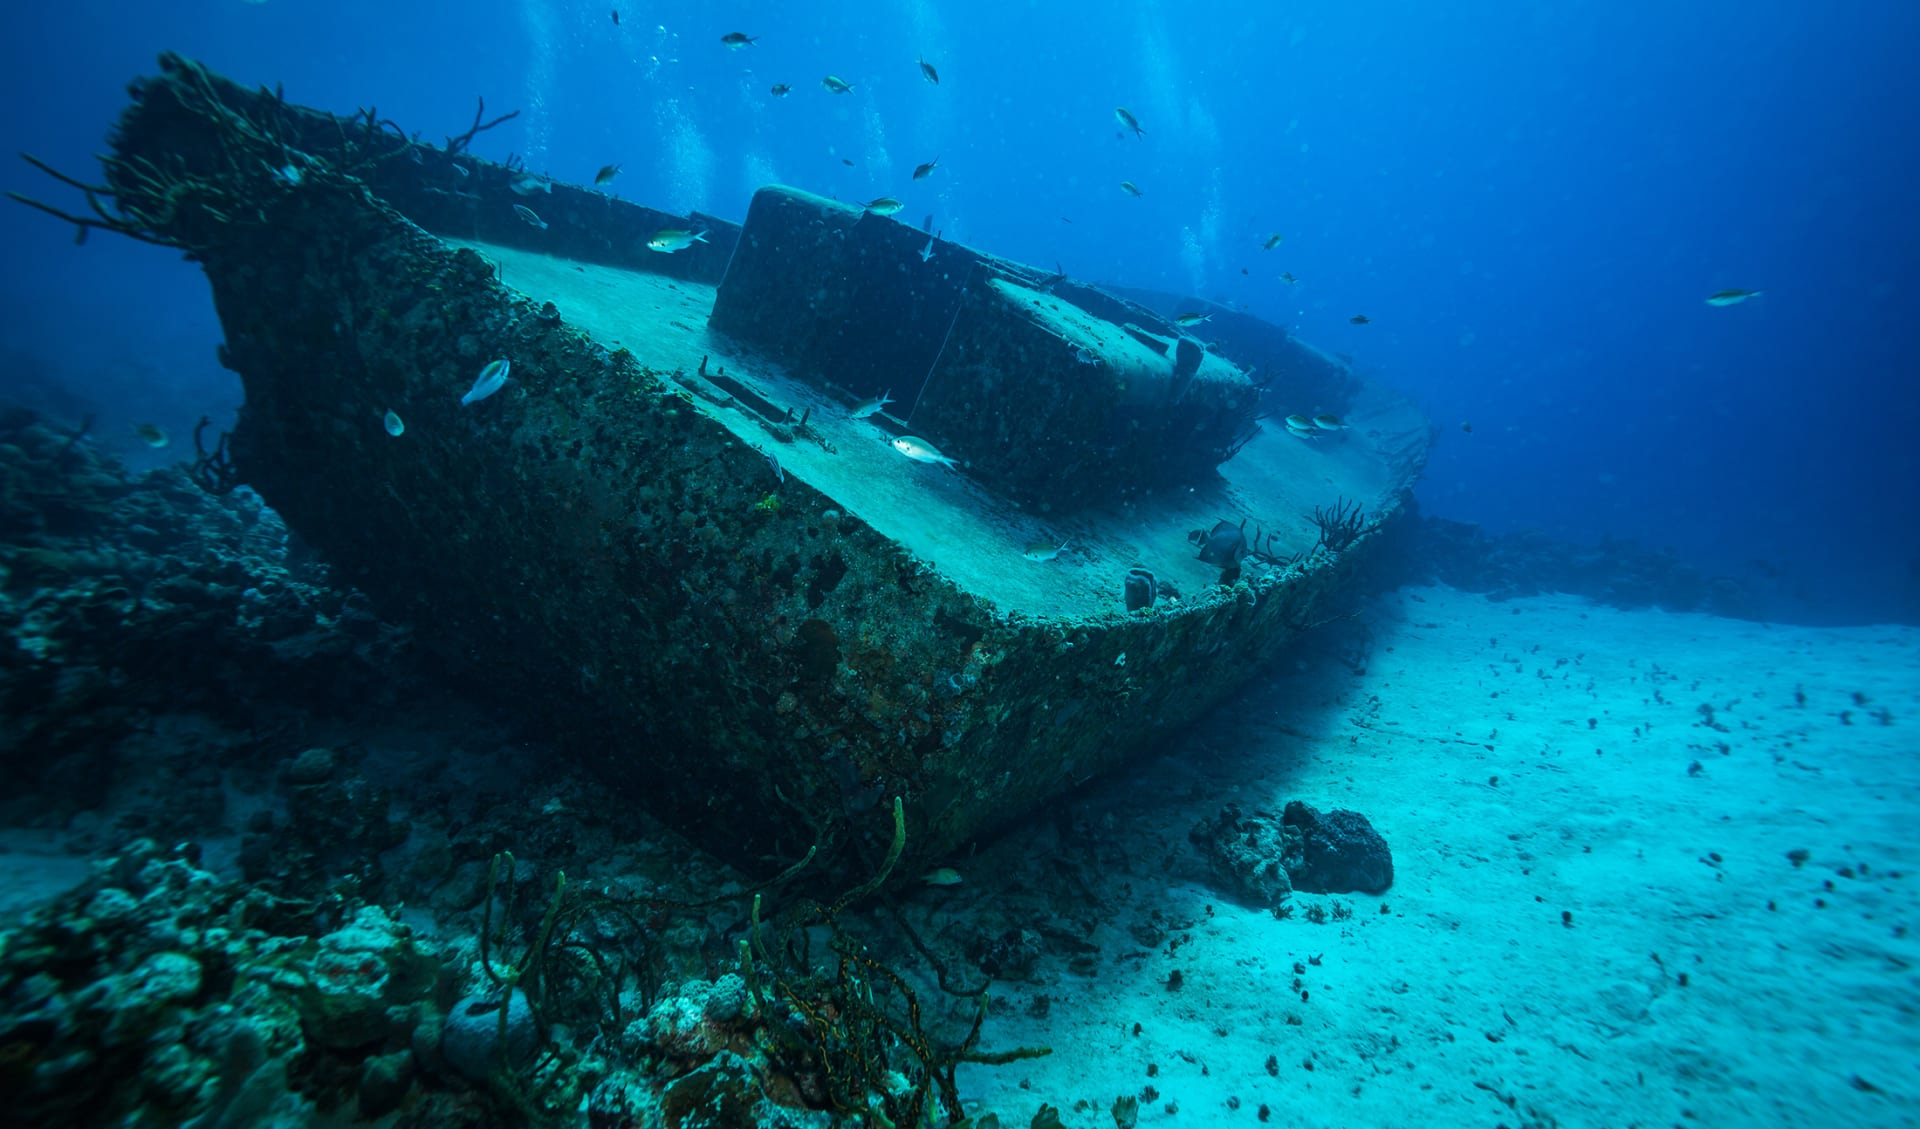 Shipwreck in the Bay of Pigs